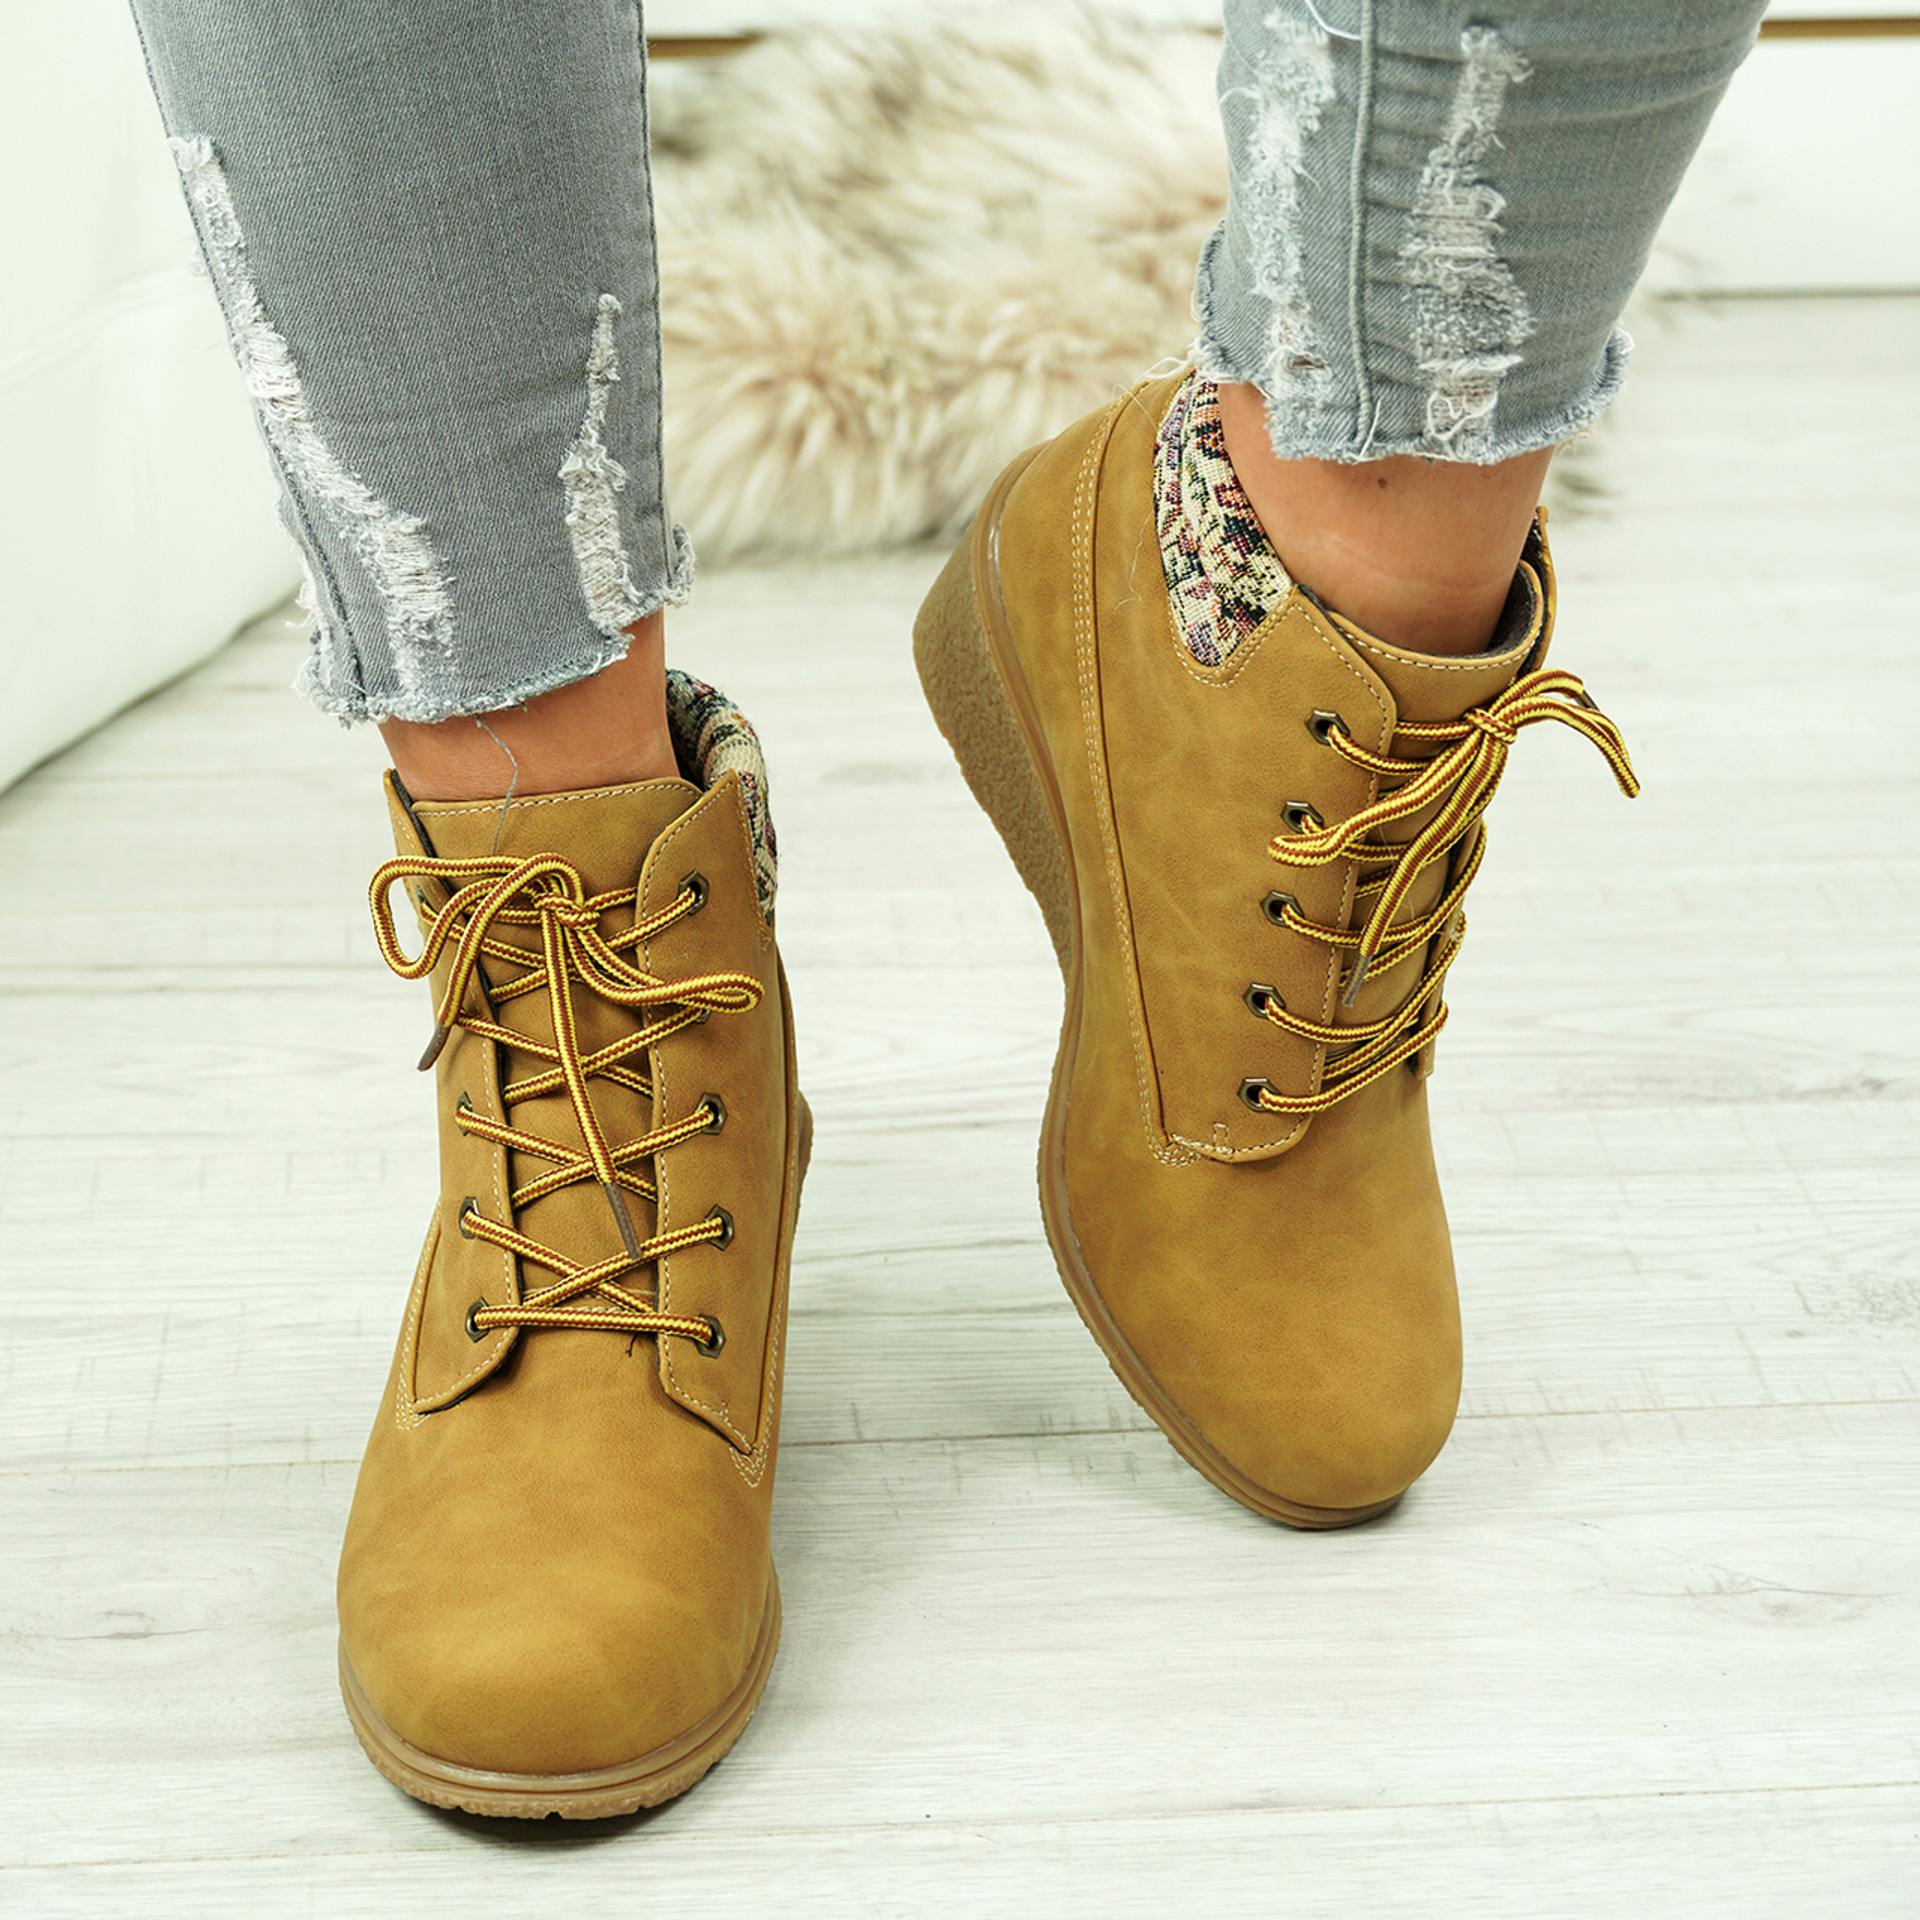 Violin Camel Ankle Boots with Beige Ankle Details